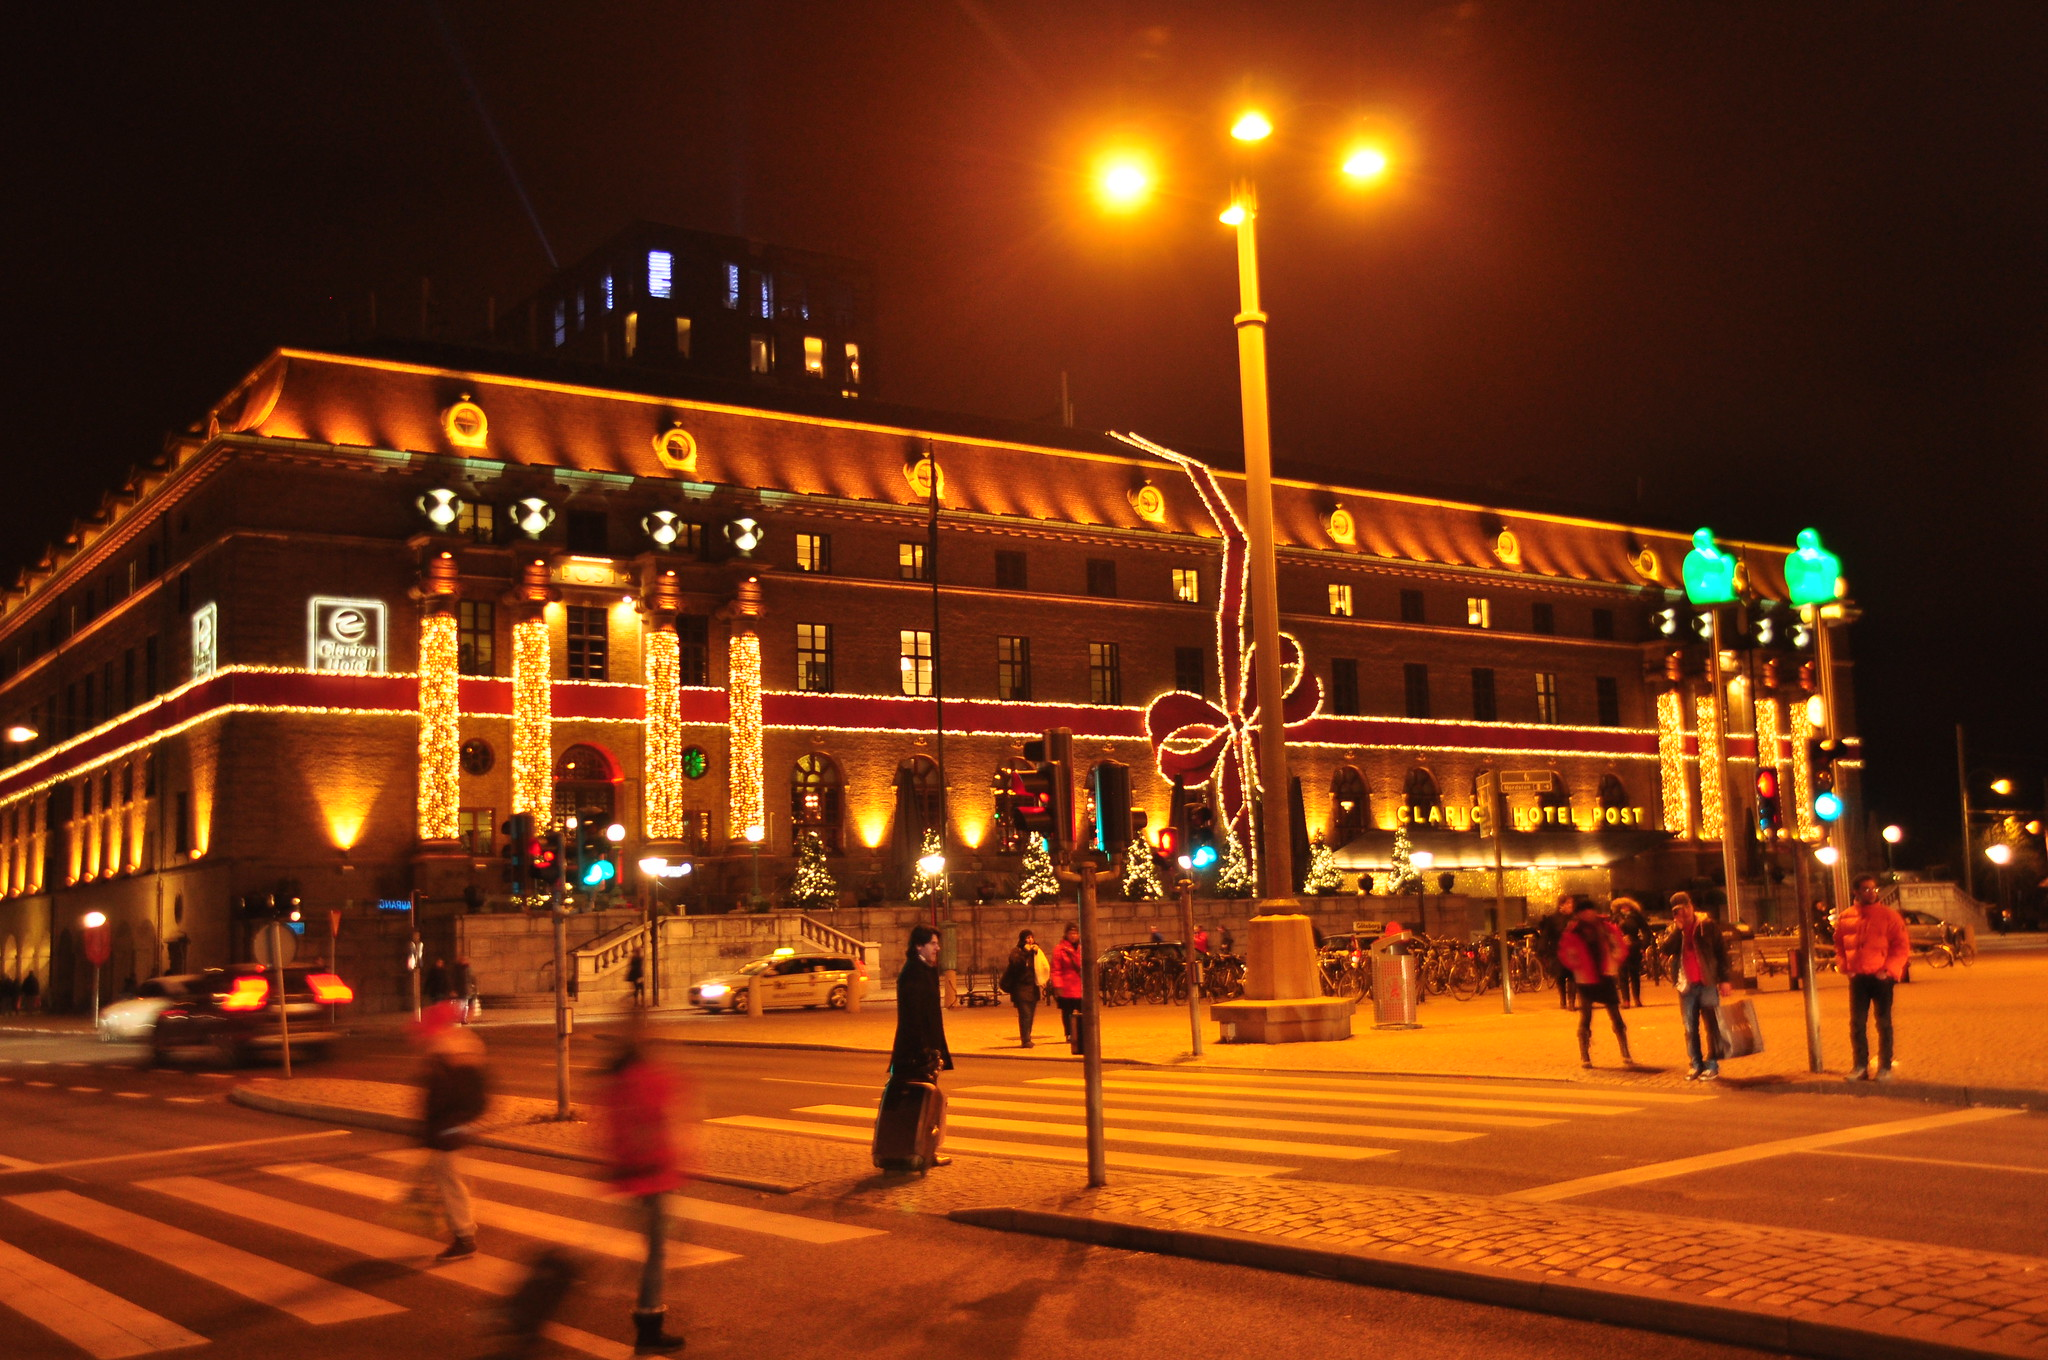 Main railroad station in Gothenburg